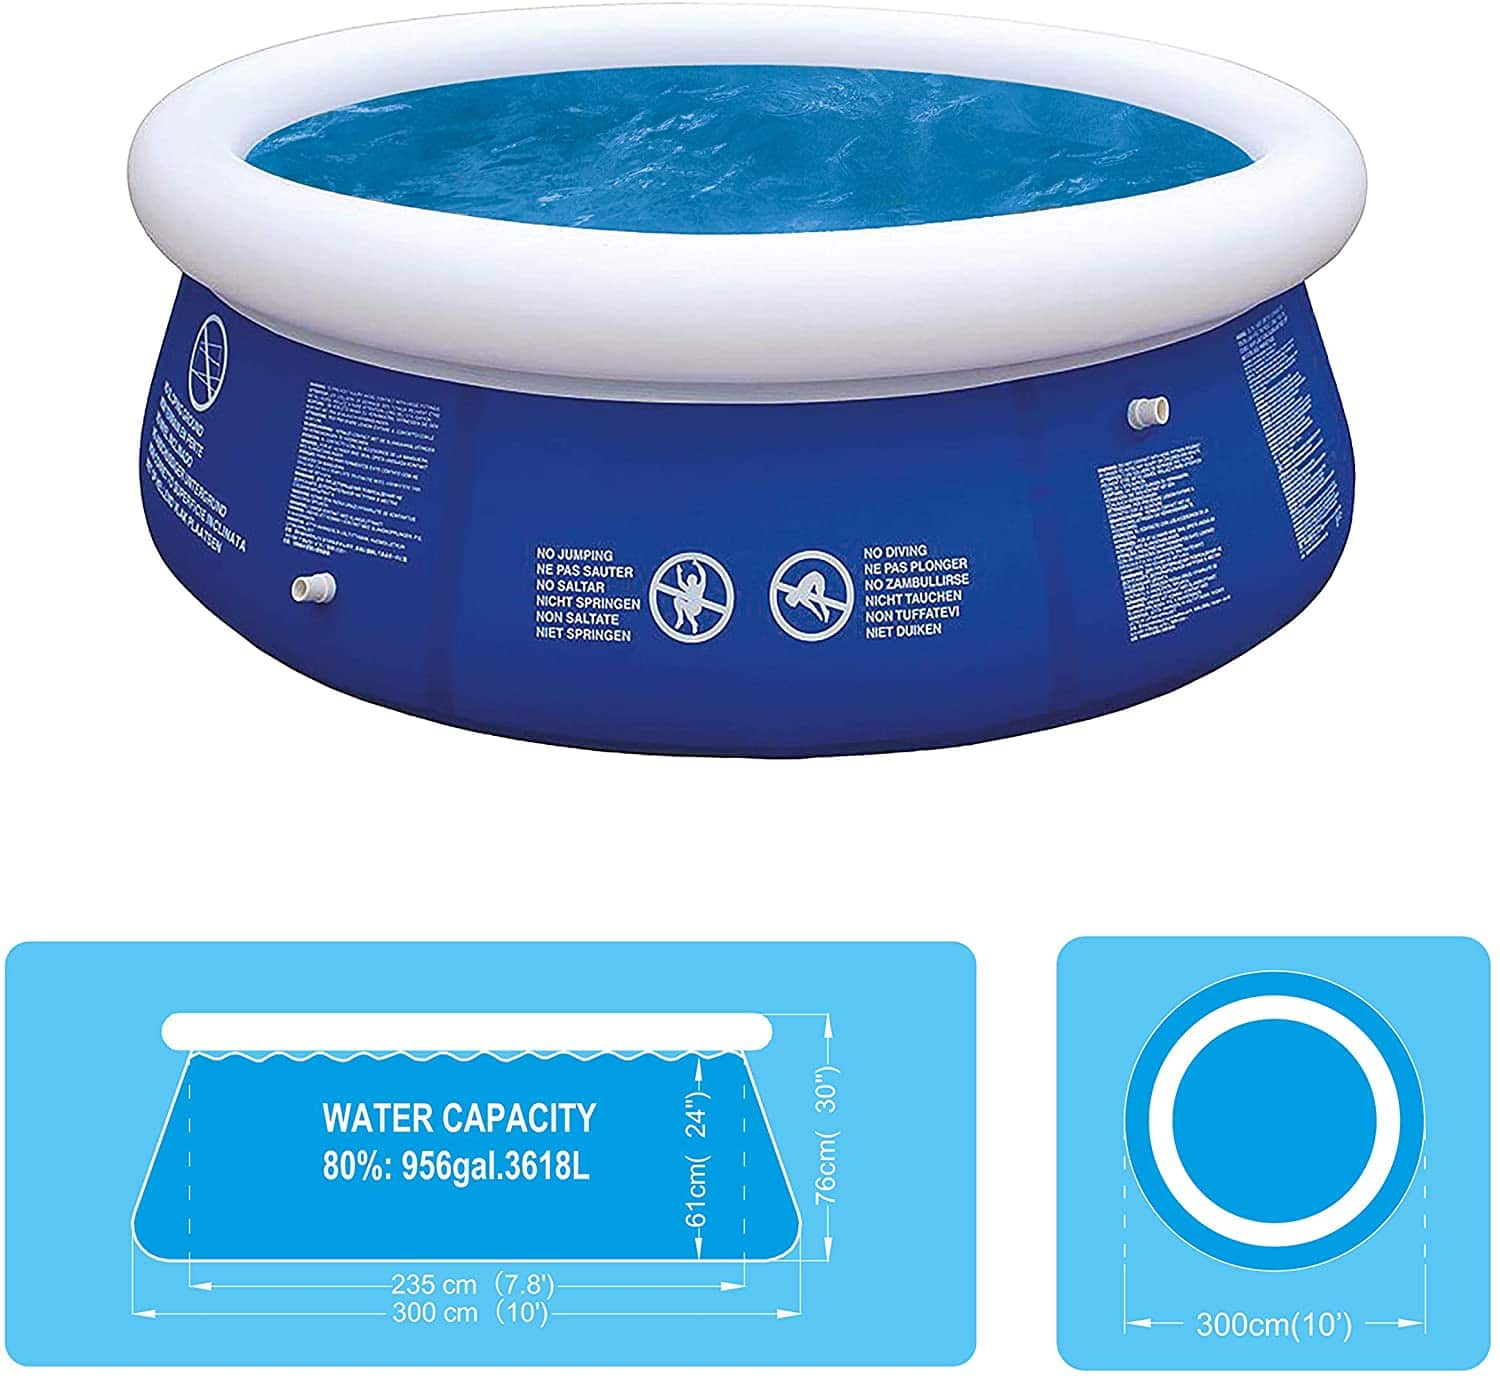 10ft Round Inflatable Fast Set Garden Swimming Pool (extra Large)